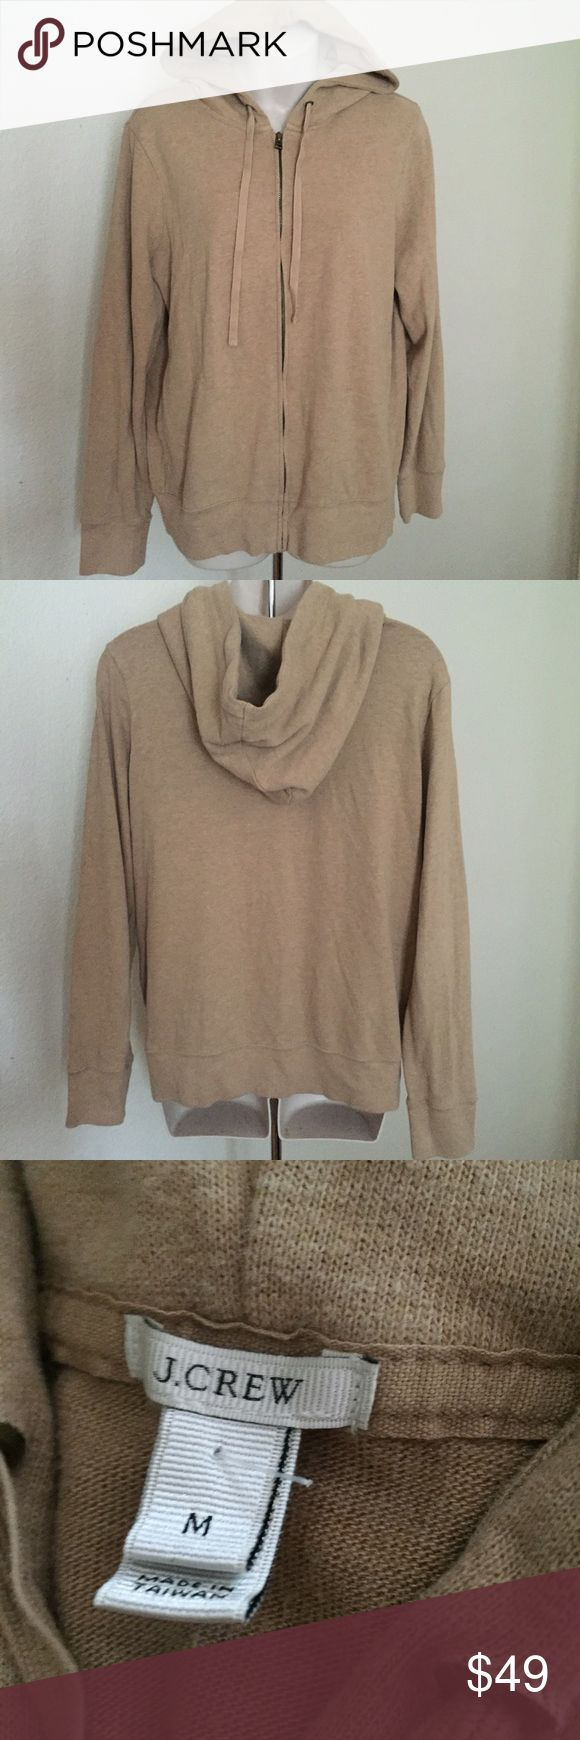 "J. Crew Camel Zip up hoodie size medium This is a gorgeous J.Crew zip up hoodie. Super soft cotton/polyester blend. Size medium. Camel color light brown. Made of corton/polyester/rayon blend. Bust 44 length 24"". Oversized fit. New condition never worn. J. Crew Tops Sweatshirts & Hoodies"